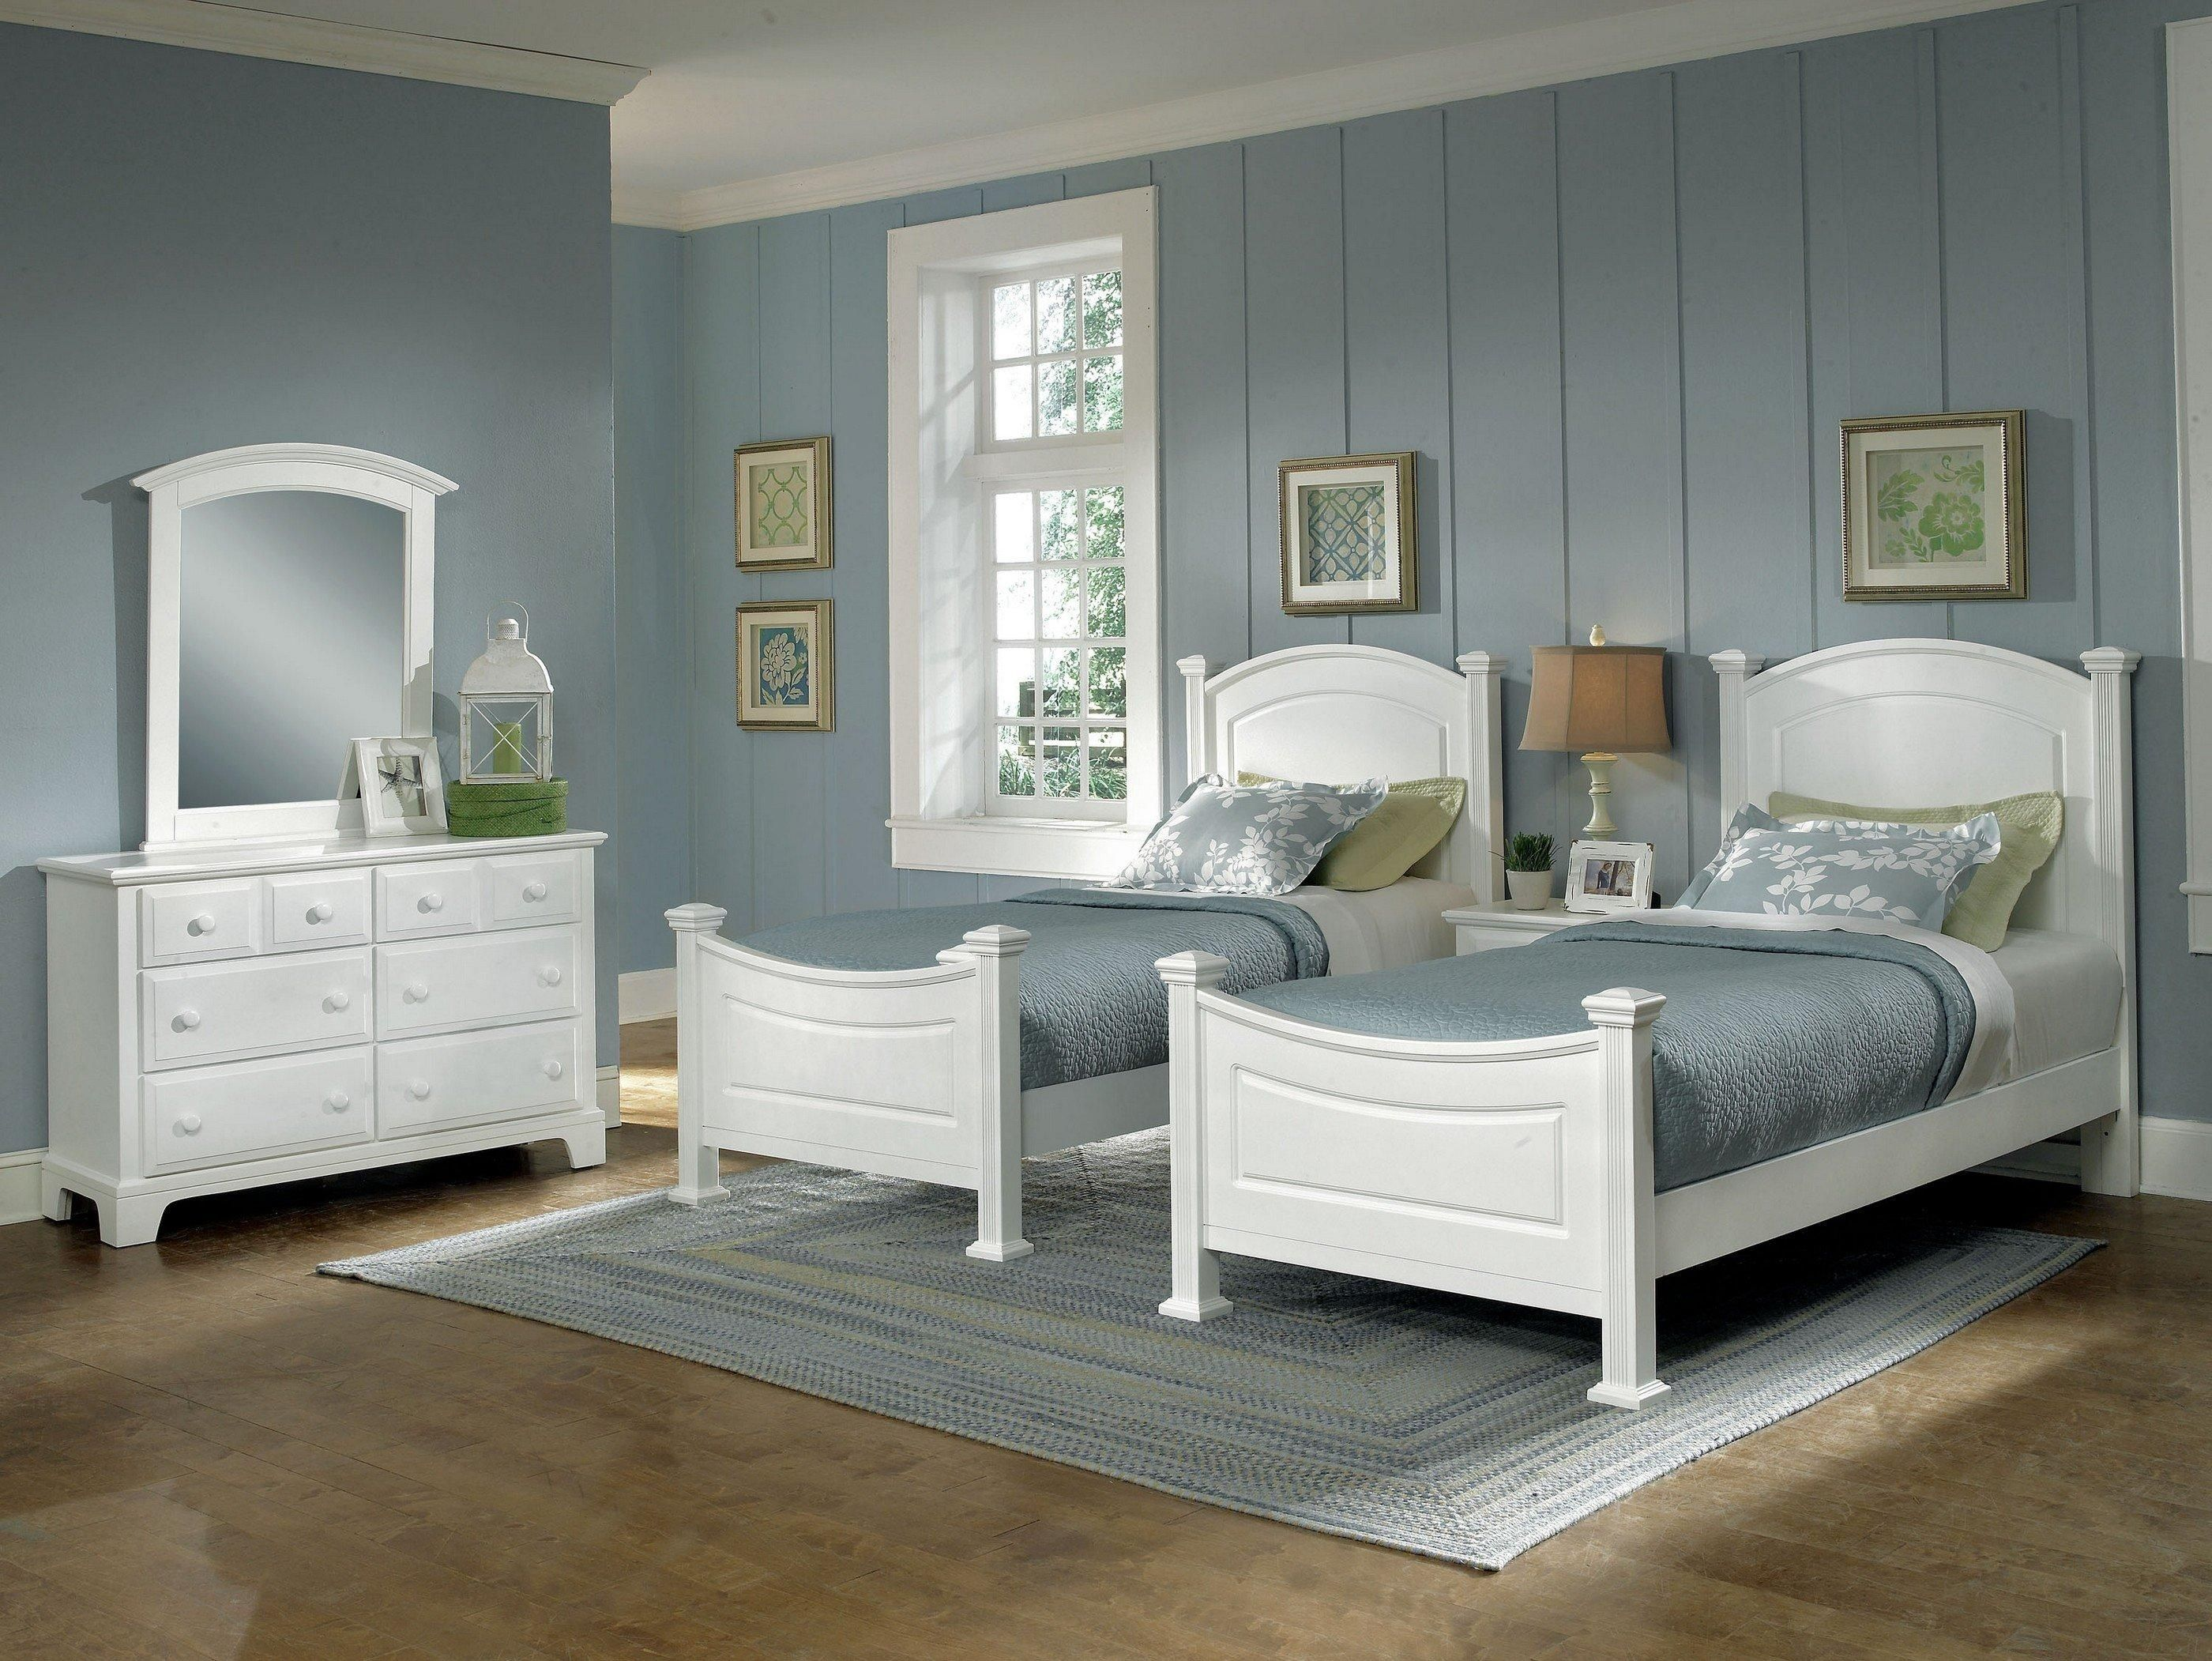 Coastal Living With Bright Whites Twin Beds Perfect For Your